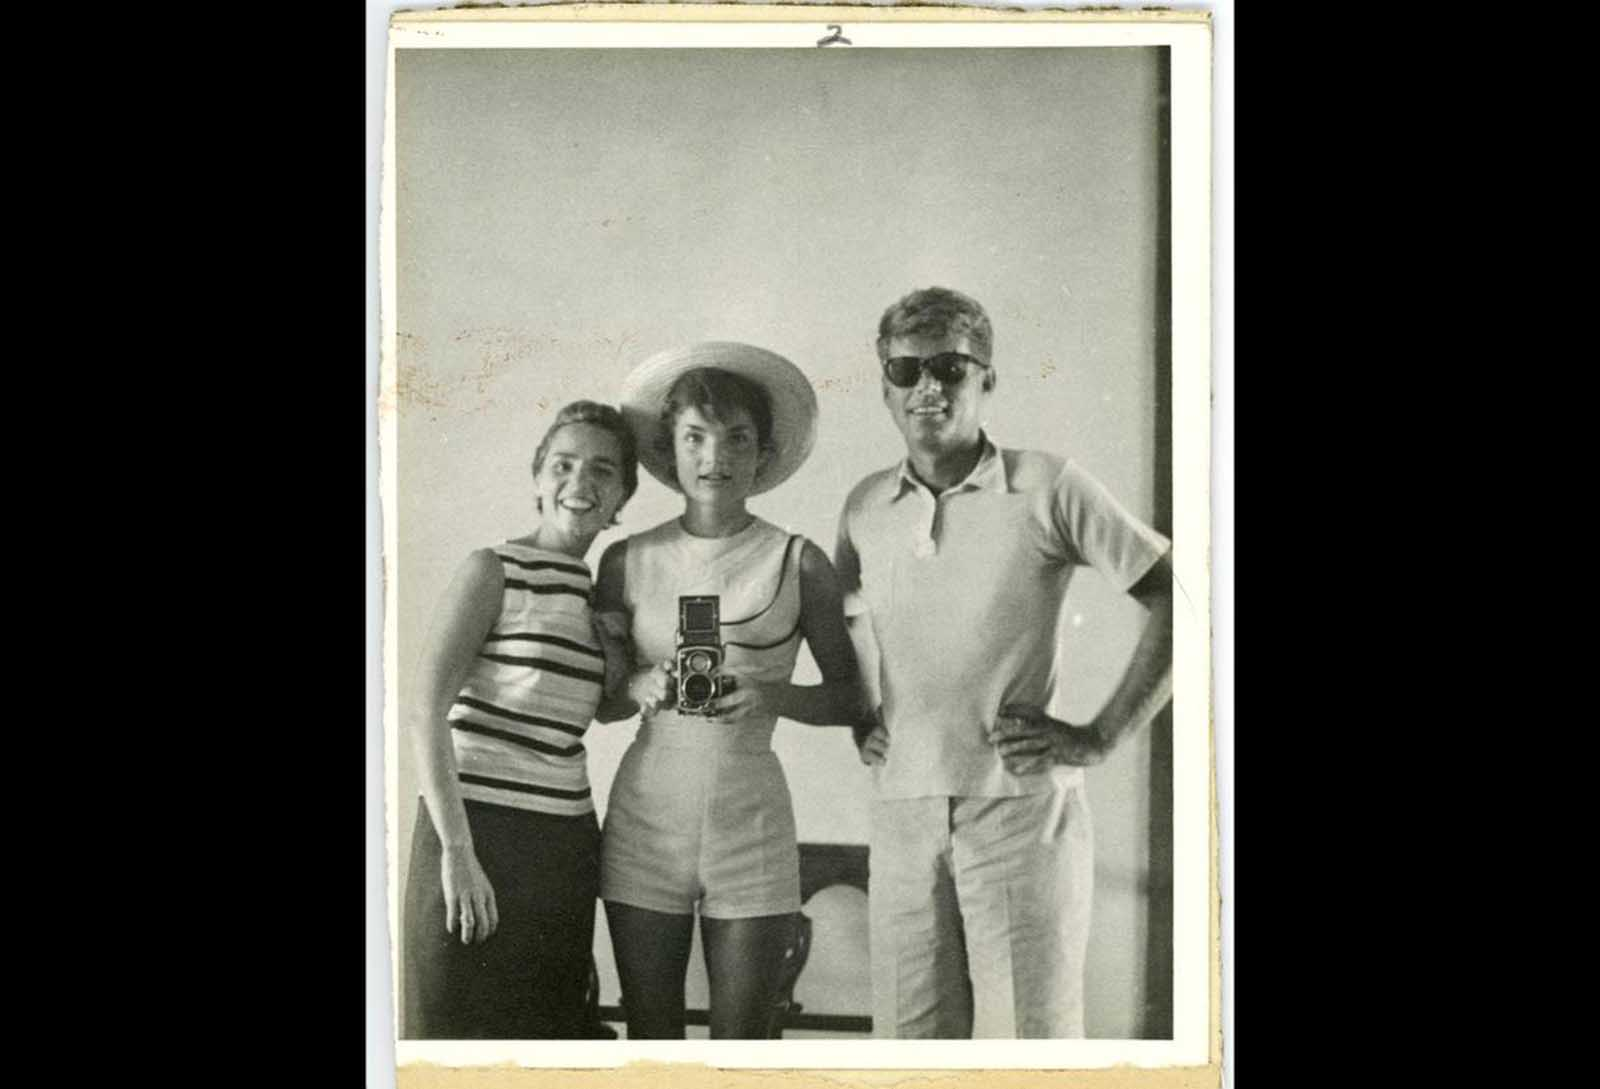 This photo provided by John McInnis Auctioneers in Amesbury, Massachusetts, shows late President John F. Kennedy, right, with his wife, Jacqueline, center, and sister-in-law Ethel Kennedy at left. The photograph is among items that were auctioned on February 17, 2013.